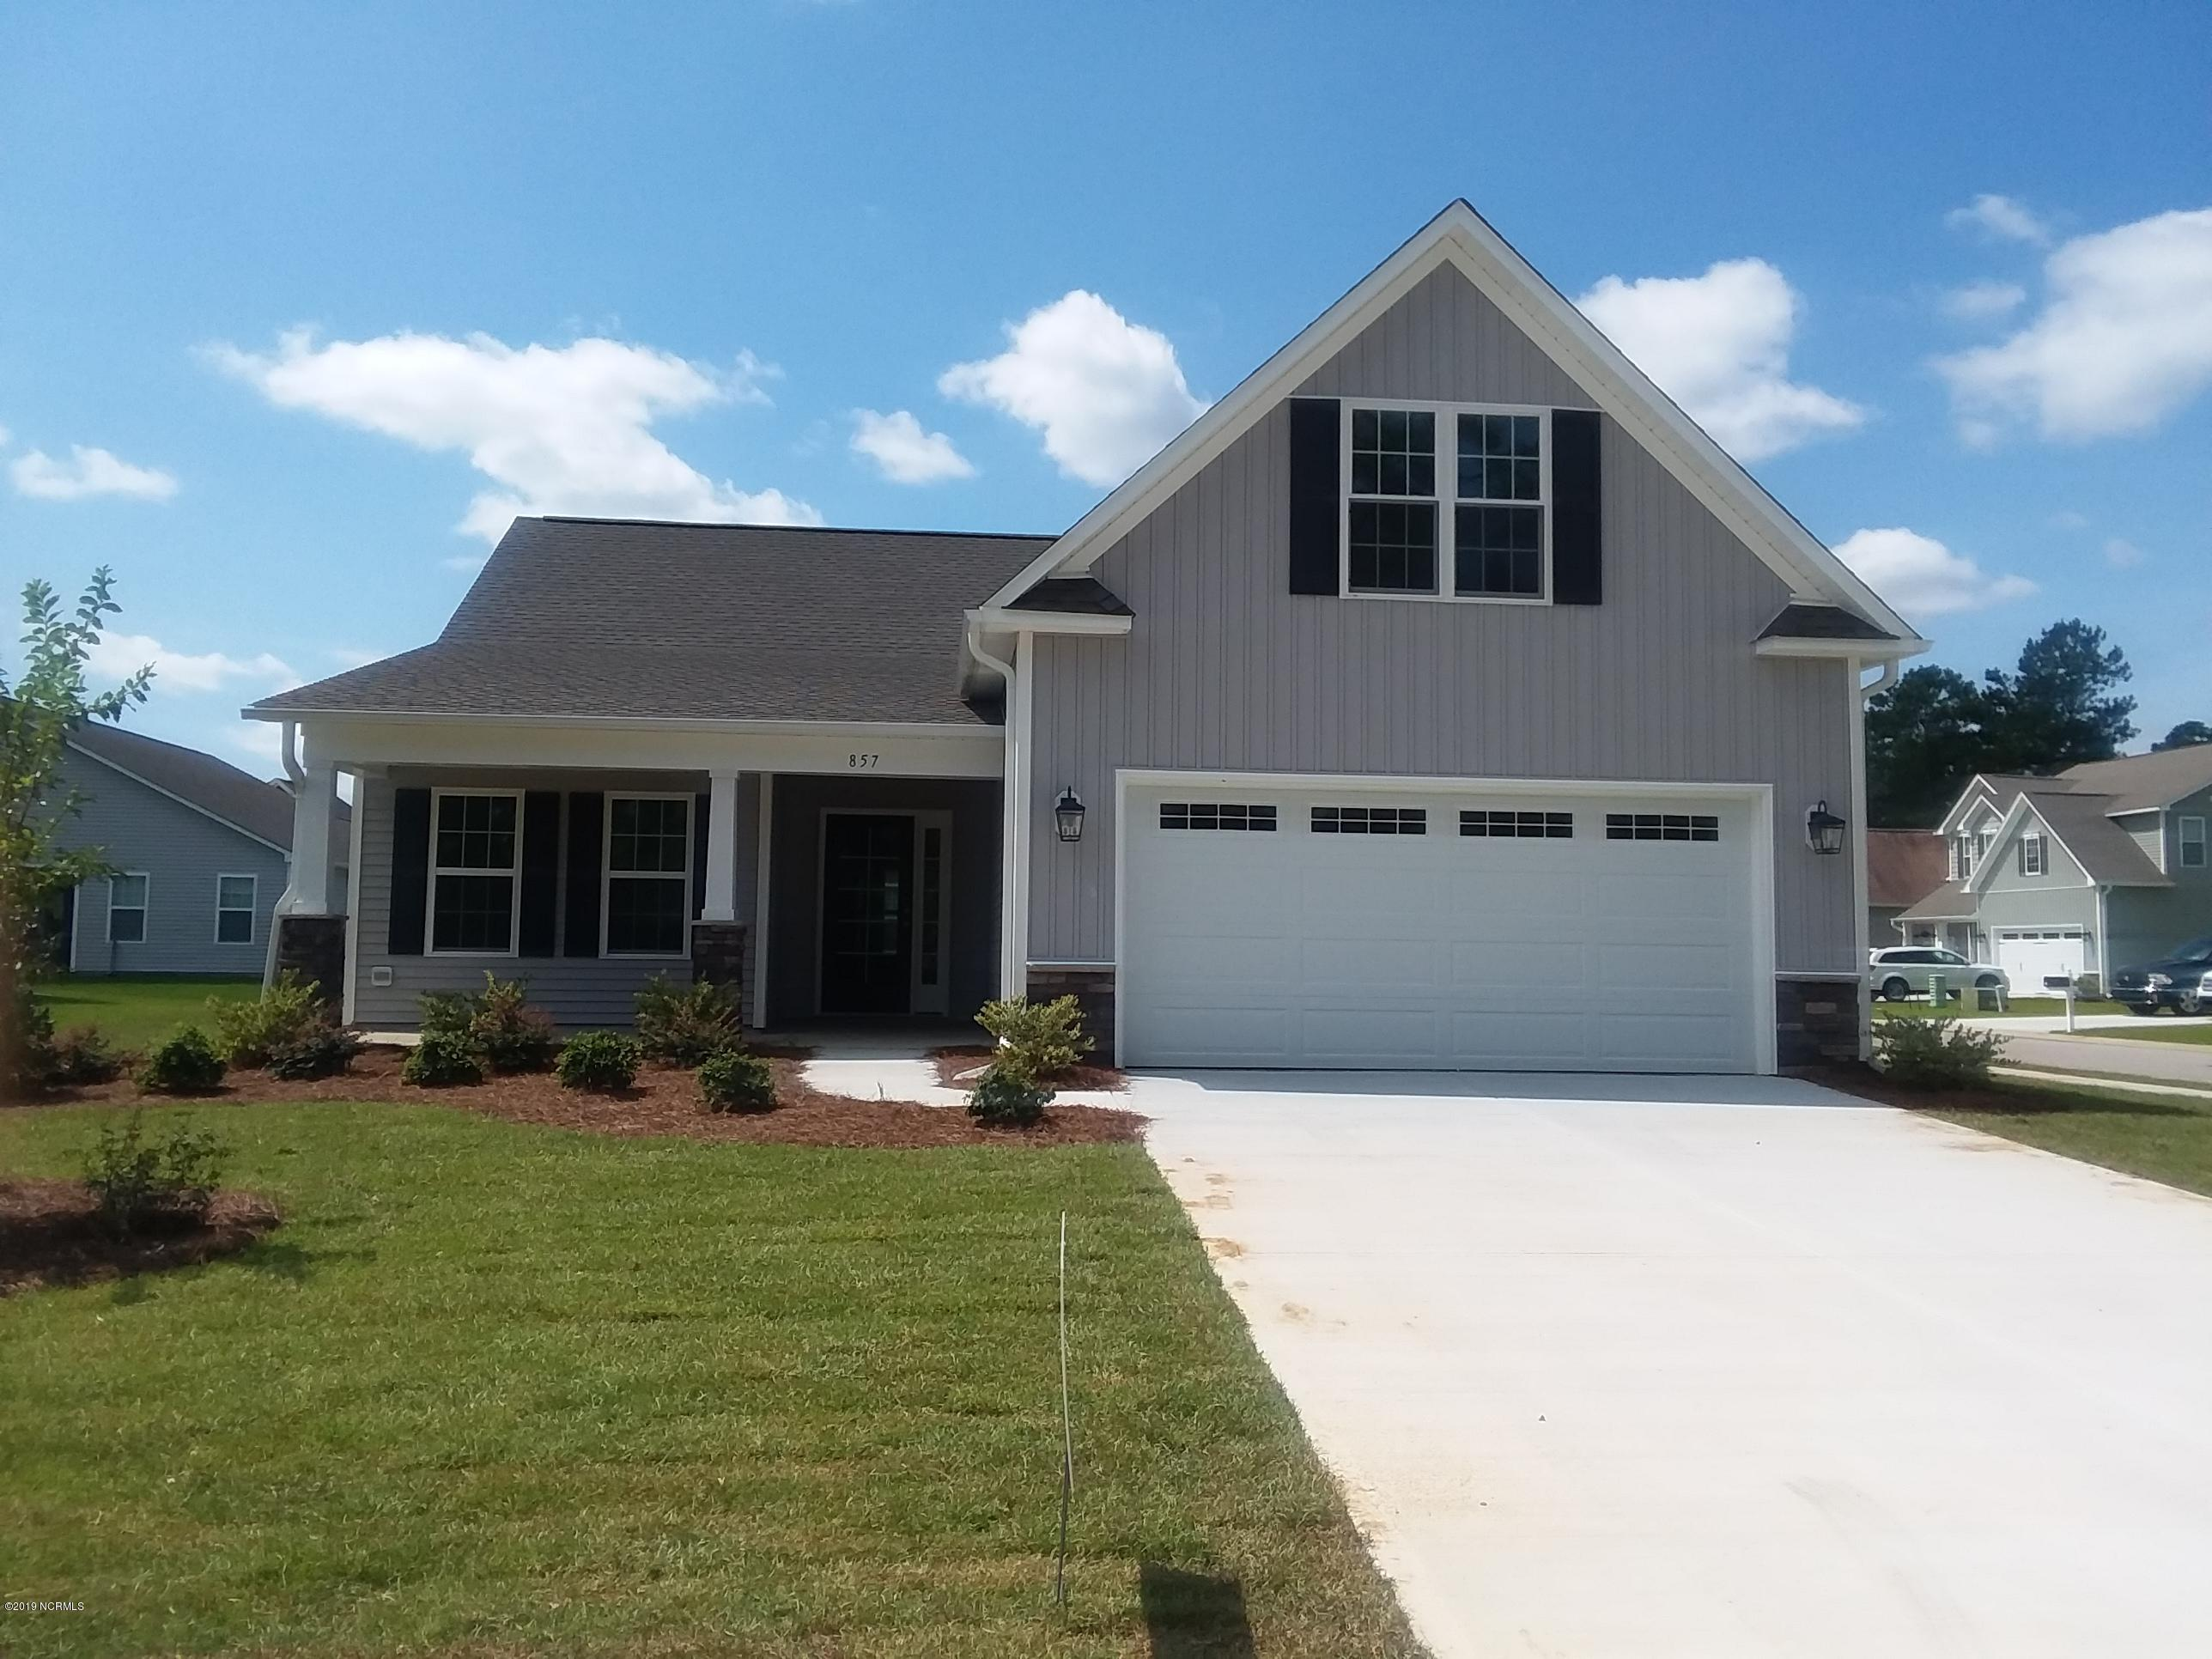 857 Rolling Pines Loop Road Leland, NC 28451